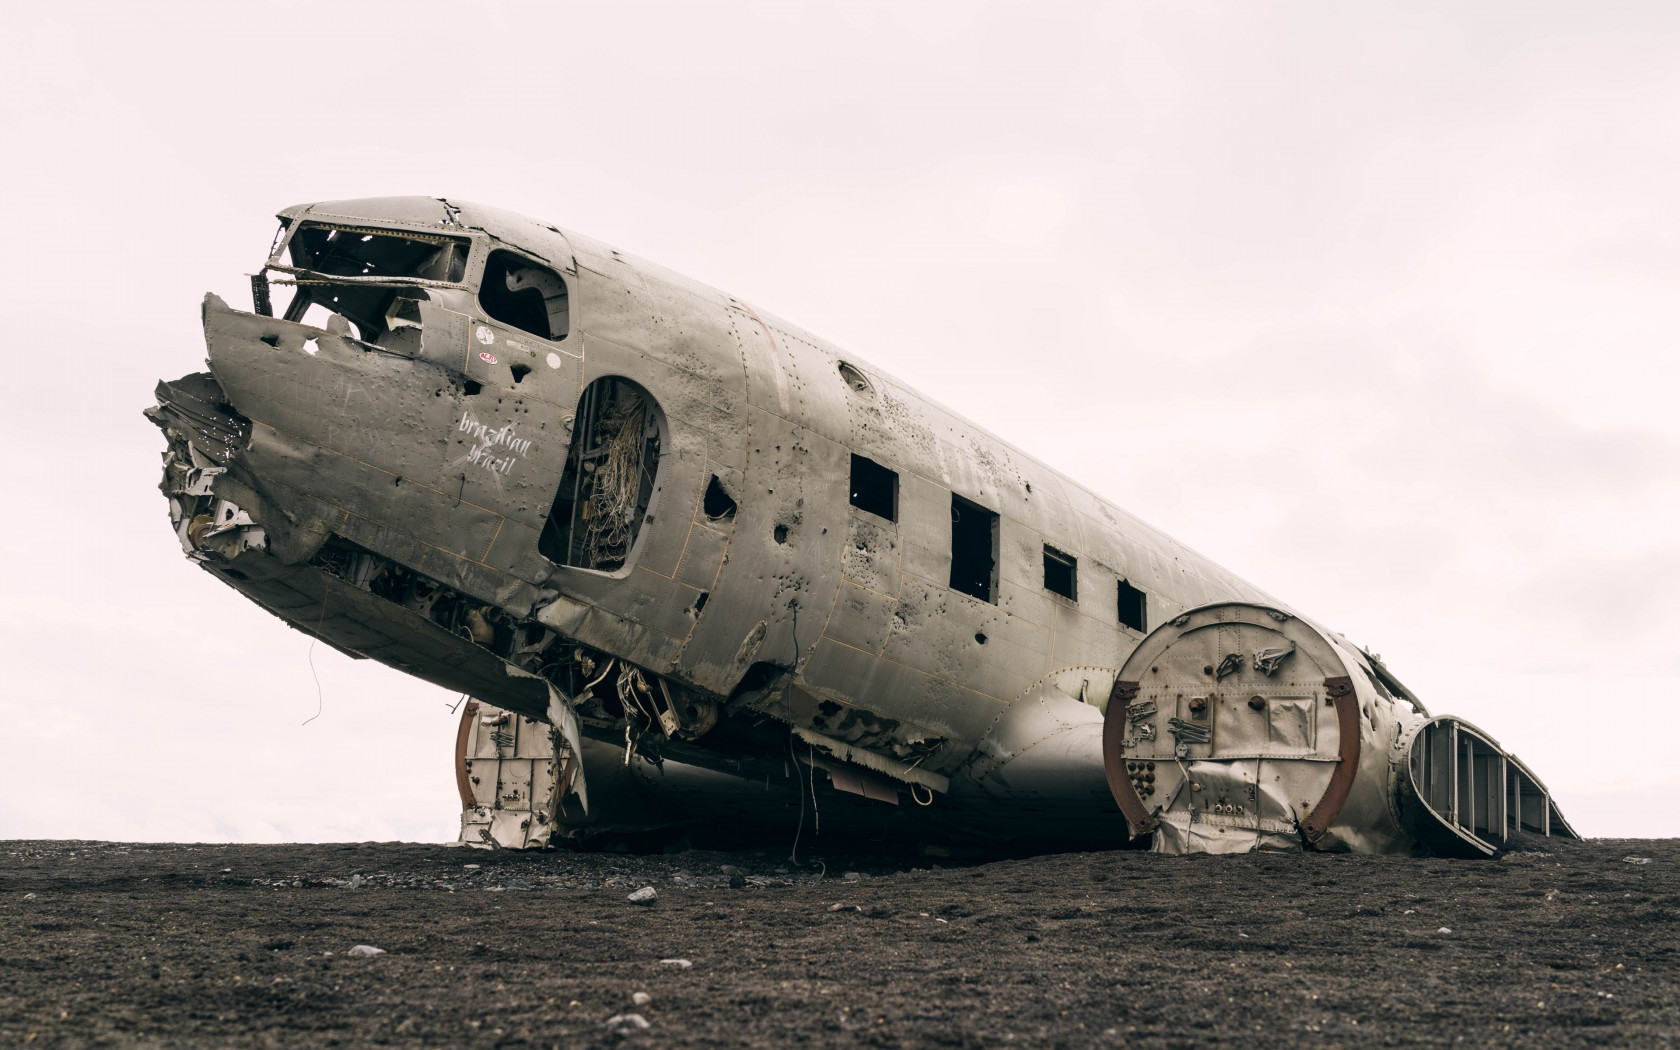 Wrecked airplane | 1680x1050 wallpaper